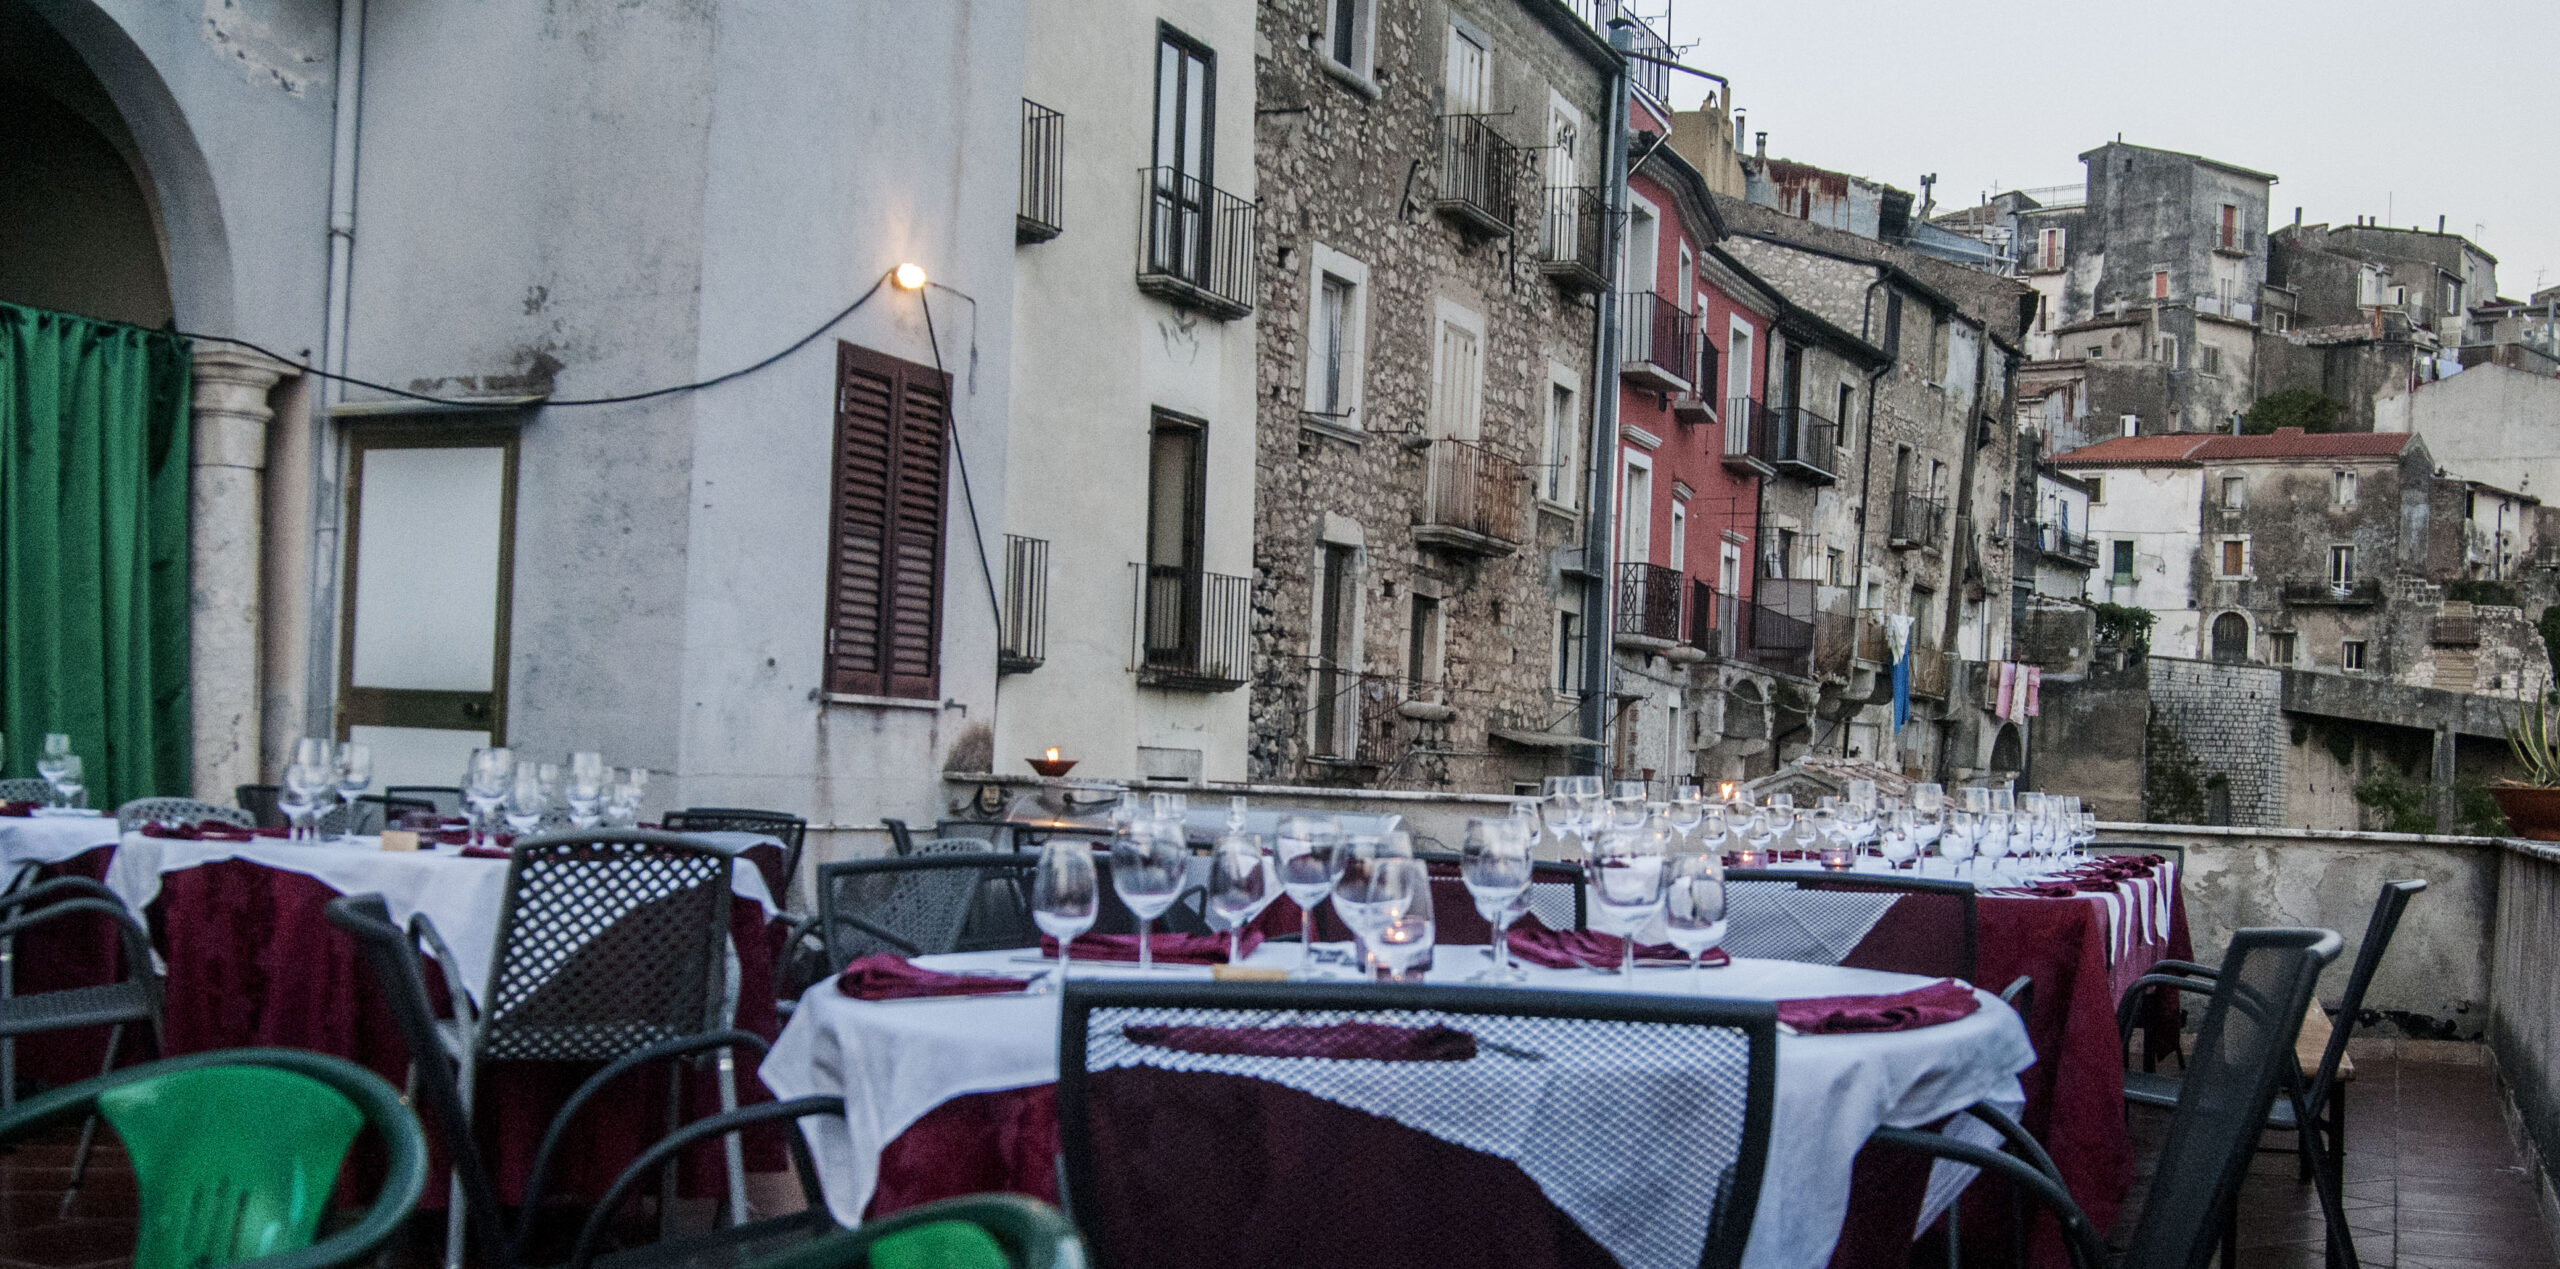 Osteria enoica on the road